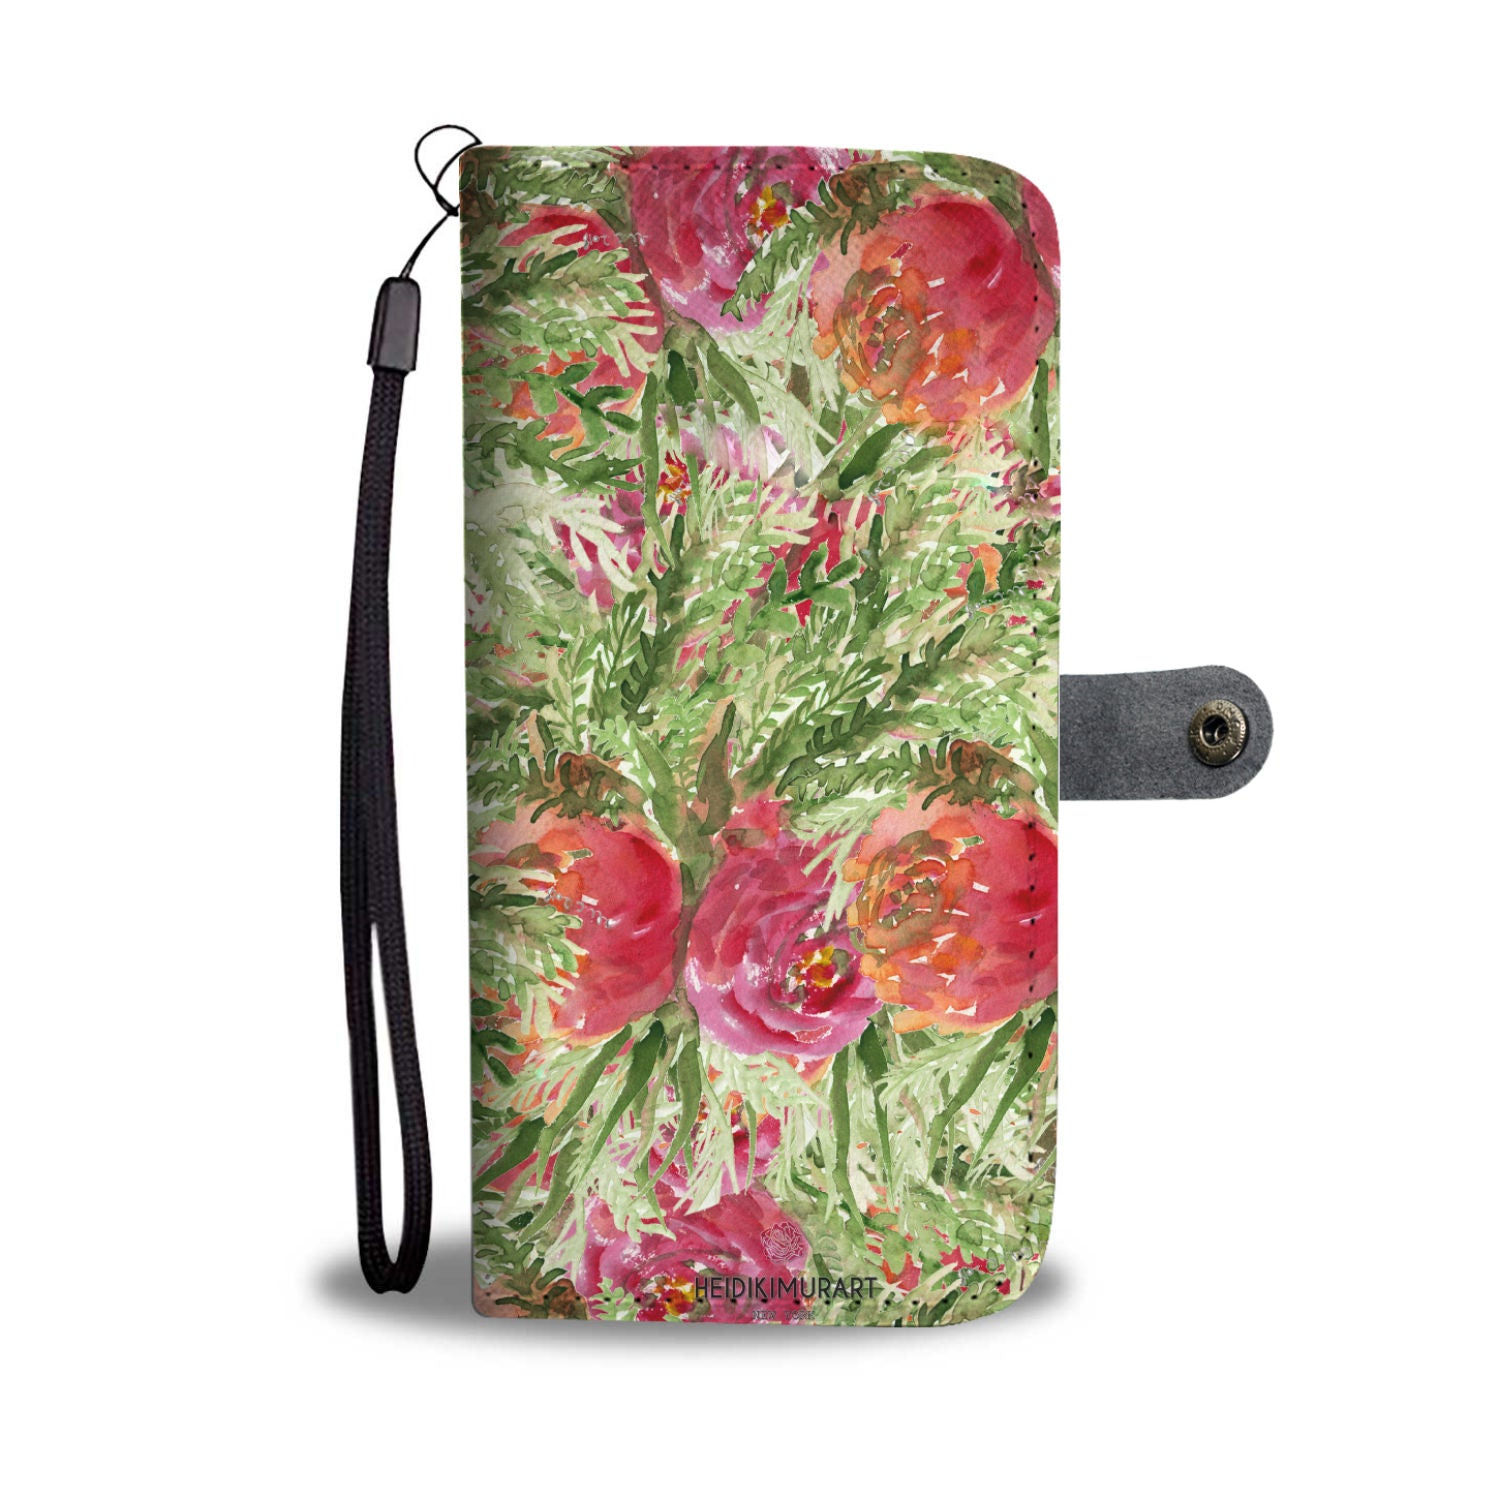 Rose Floral Wallet Phone Case, Girlie Pink Flower Print Women's Wallet iPhone Samsung Case